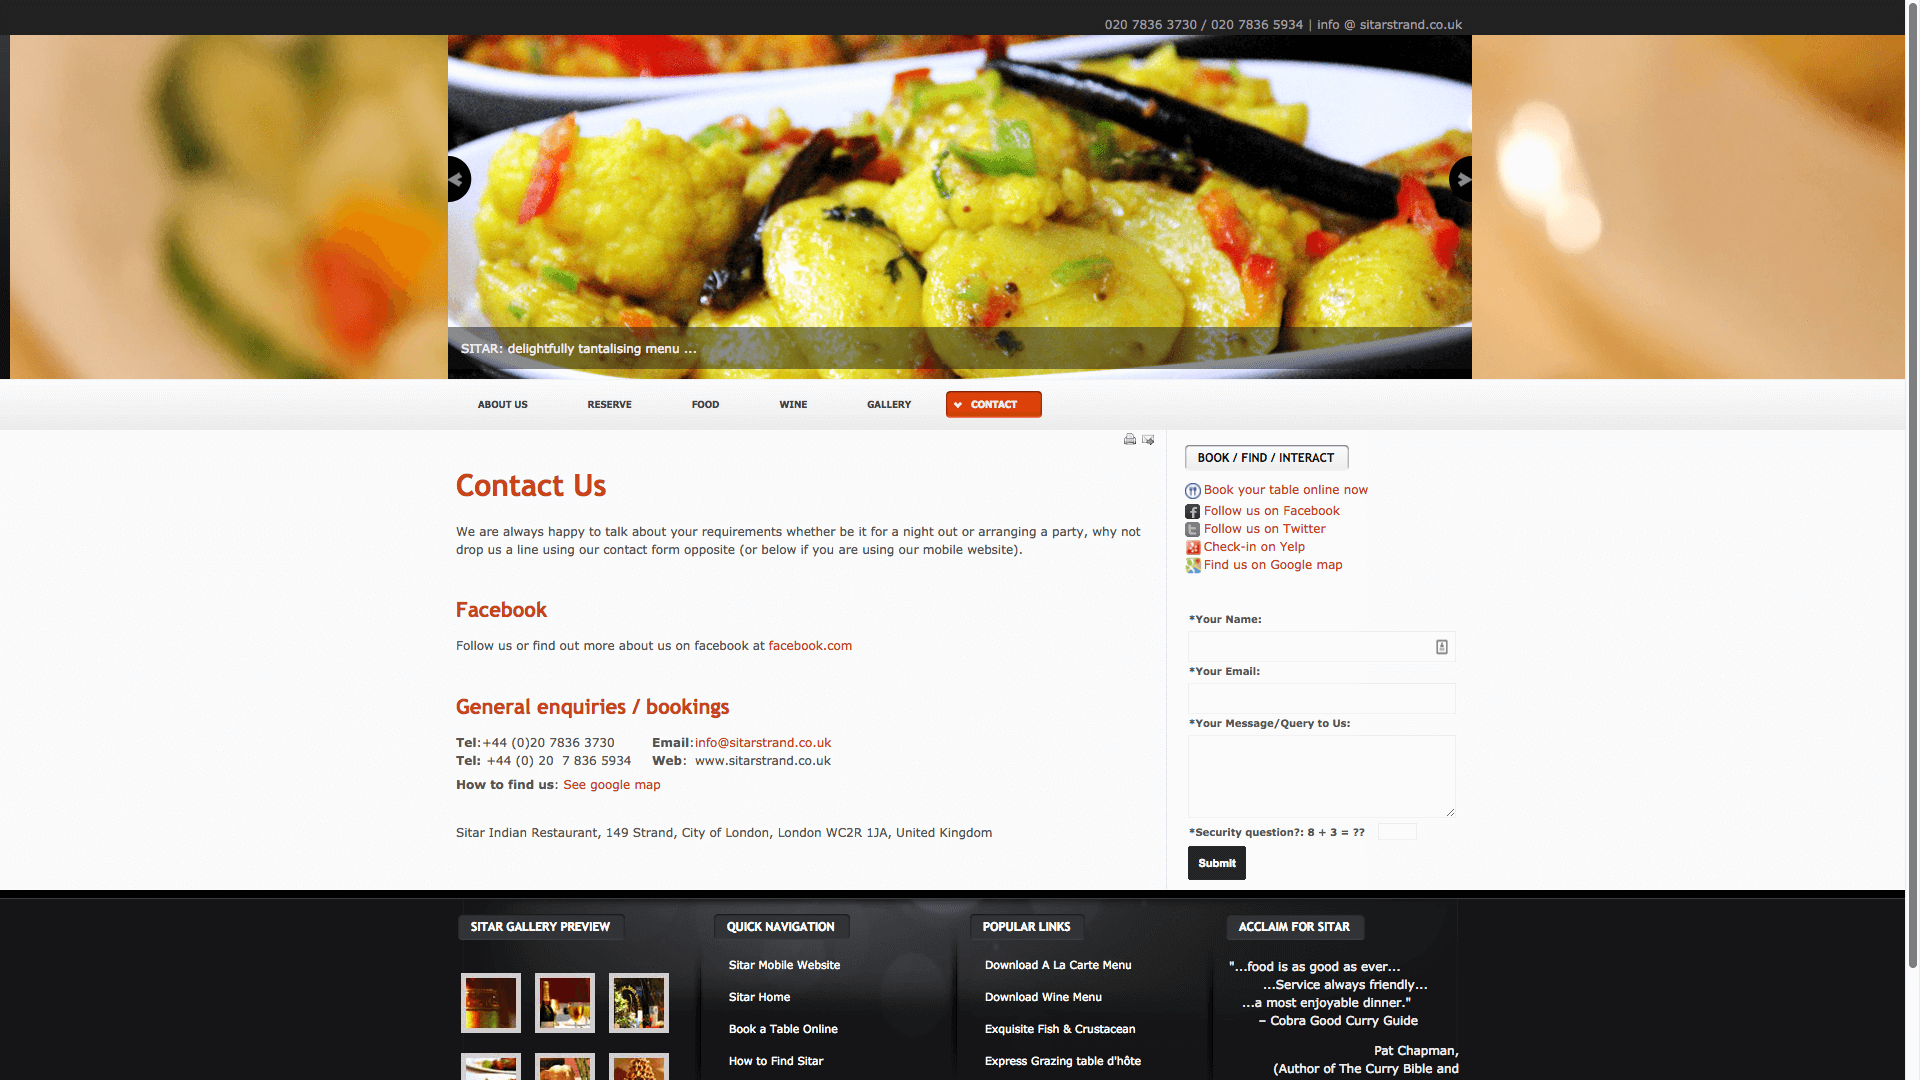 Shapur before 2 - Website design for Indian Restaurant